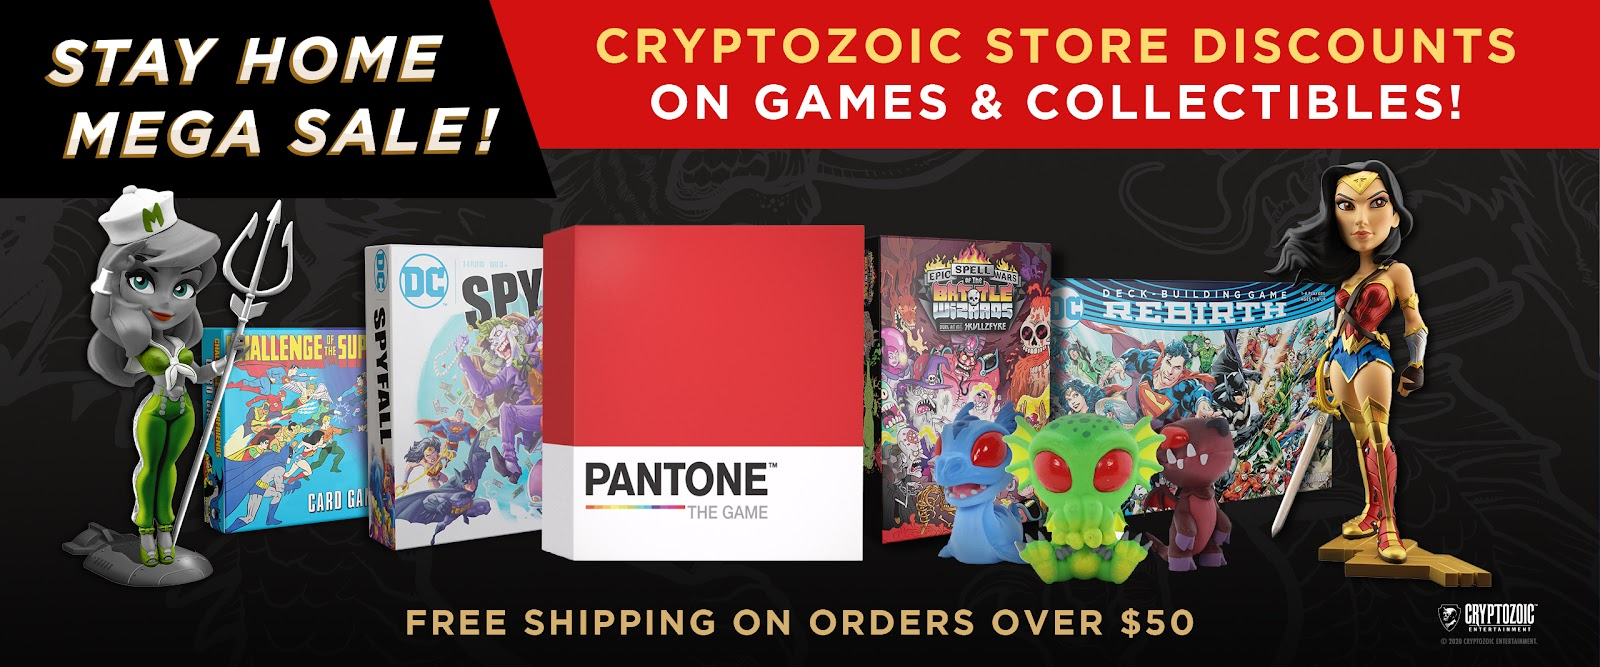 Stay Home Mega Sale: Cryptozoic Games & Collectibles